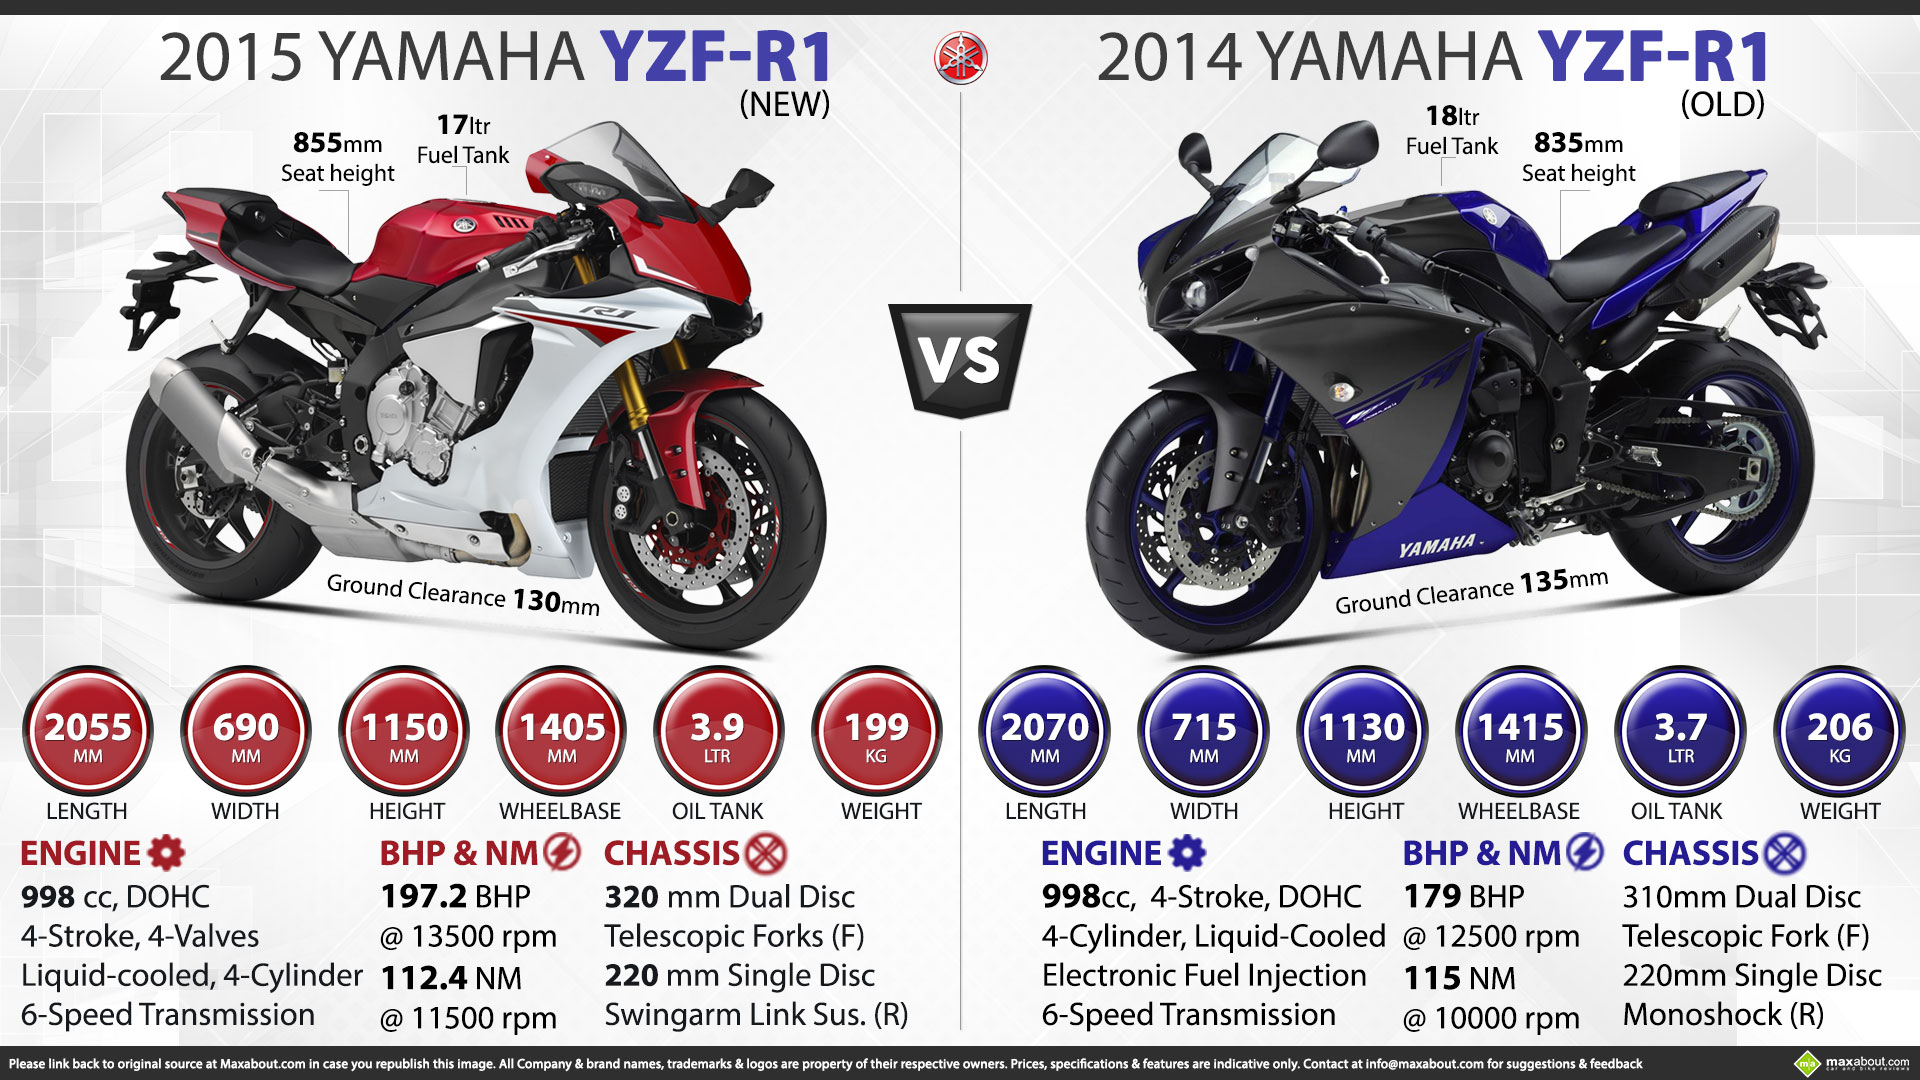 hydraulic rc cars with New Yamaha Yzf R1 Vs Old Yamaha Yzf R1 on  also Activa 125 Vs Vespa S125 furthermore Yzf R3 Vs Rc390 Vs Cbr300r Vs Ninja 300 also Best Electric Cars For Kids furthermore Hydraulik.